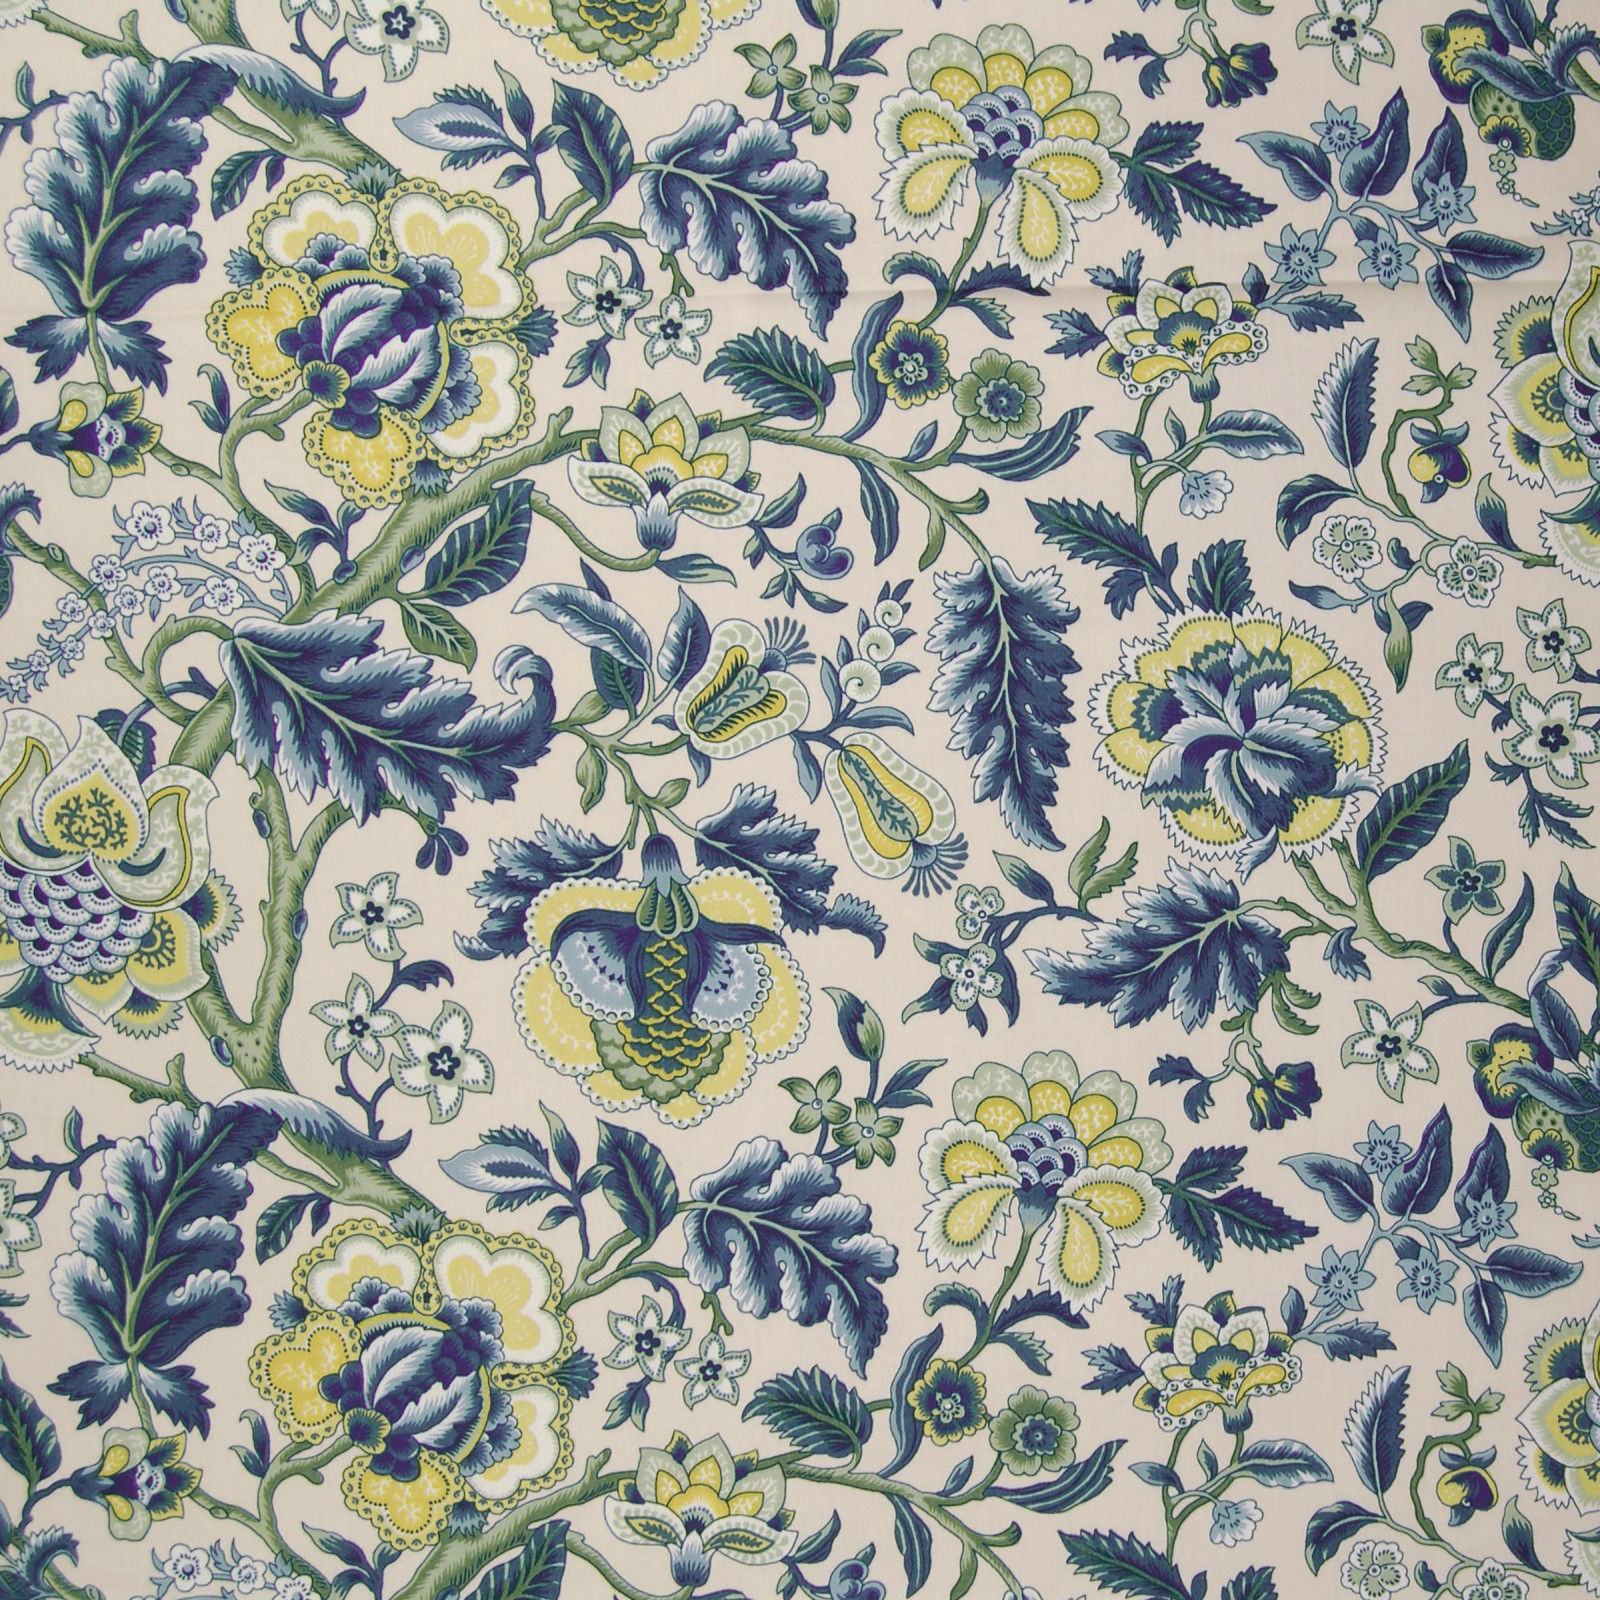 A9755 Blue Fabric C72 BLUE FLORAL CONTEMPORARY GREEN